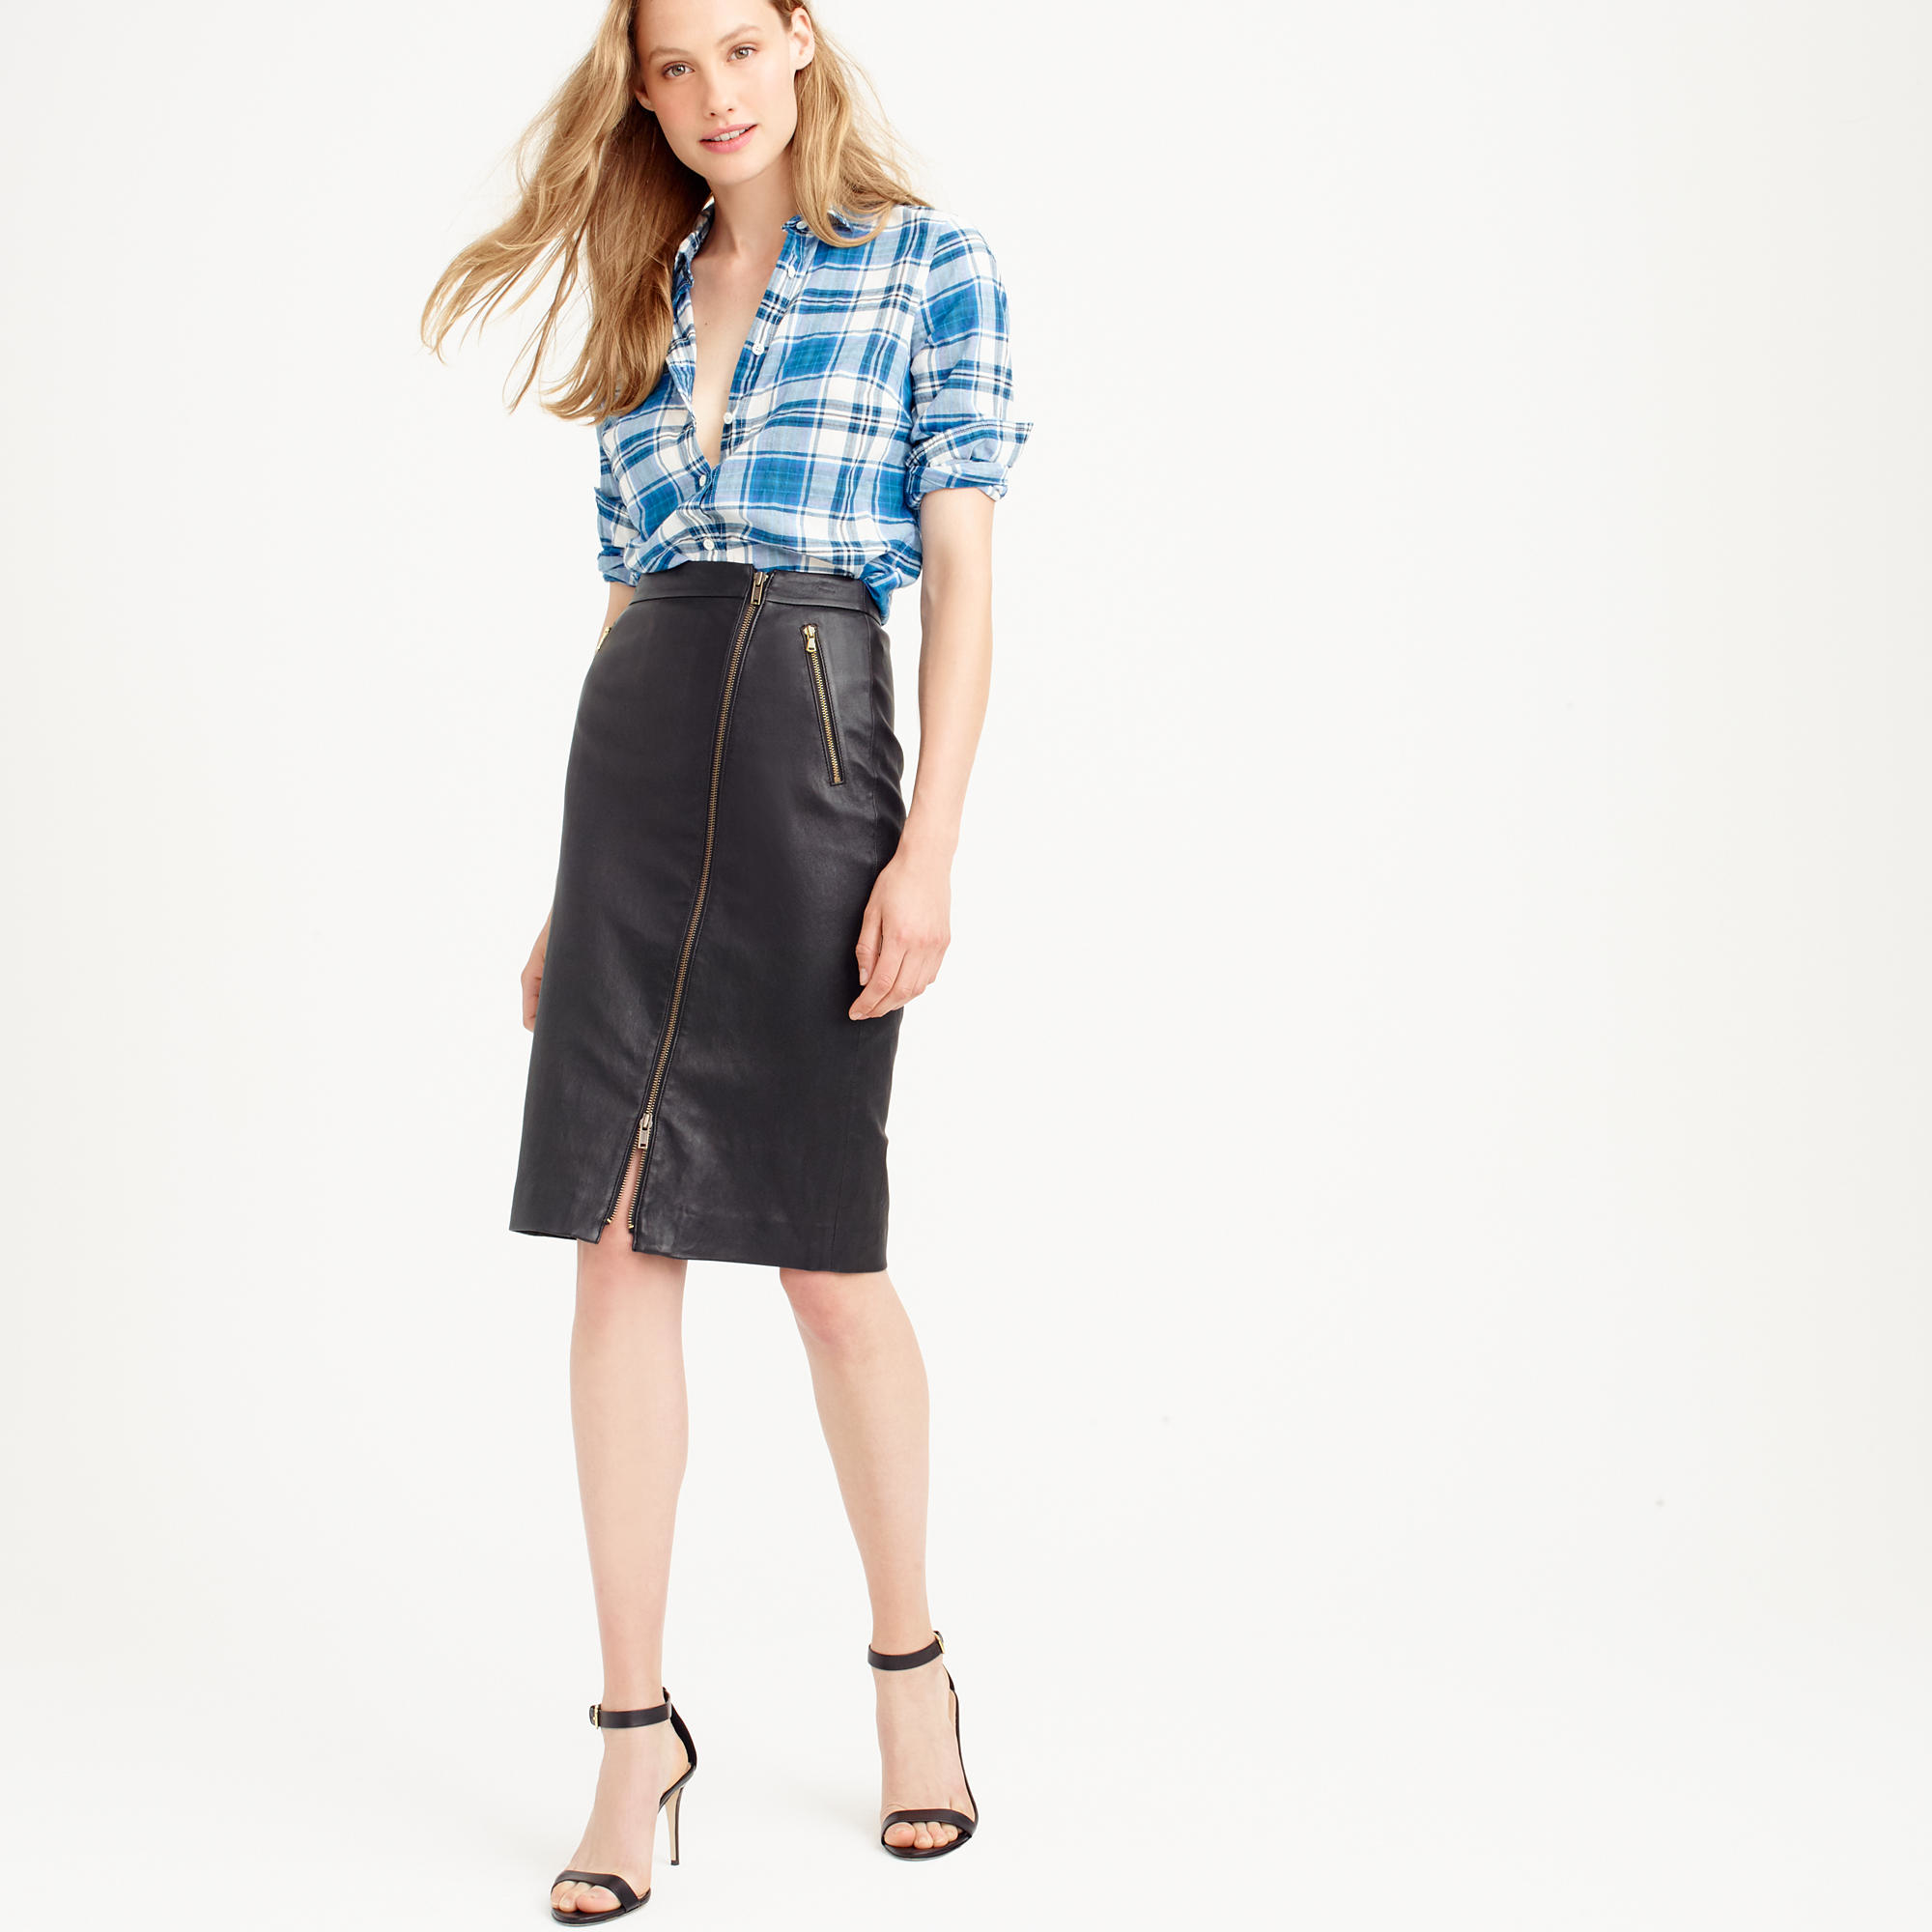 88d60ad56a J.Crew Collection Leather Motorcycle Pencil Skirt in Black - Lyst